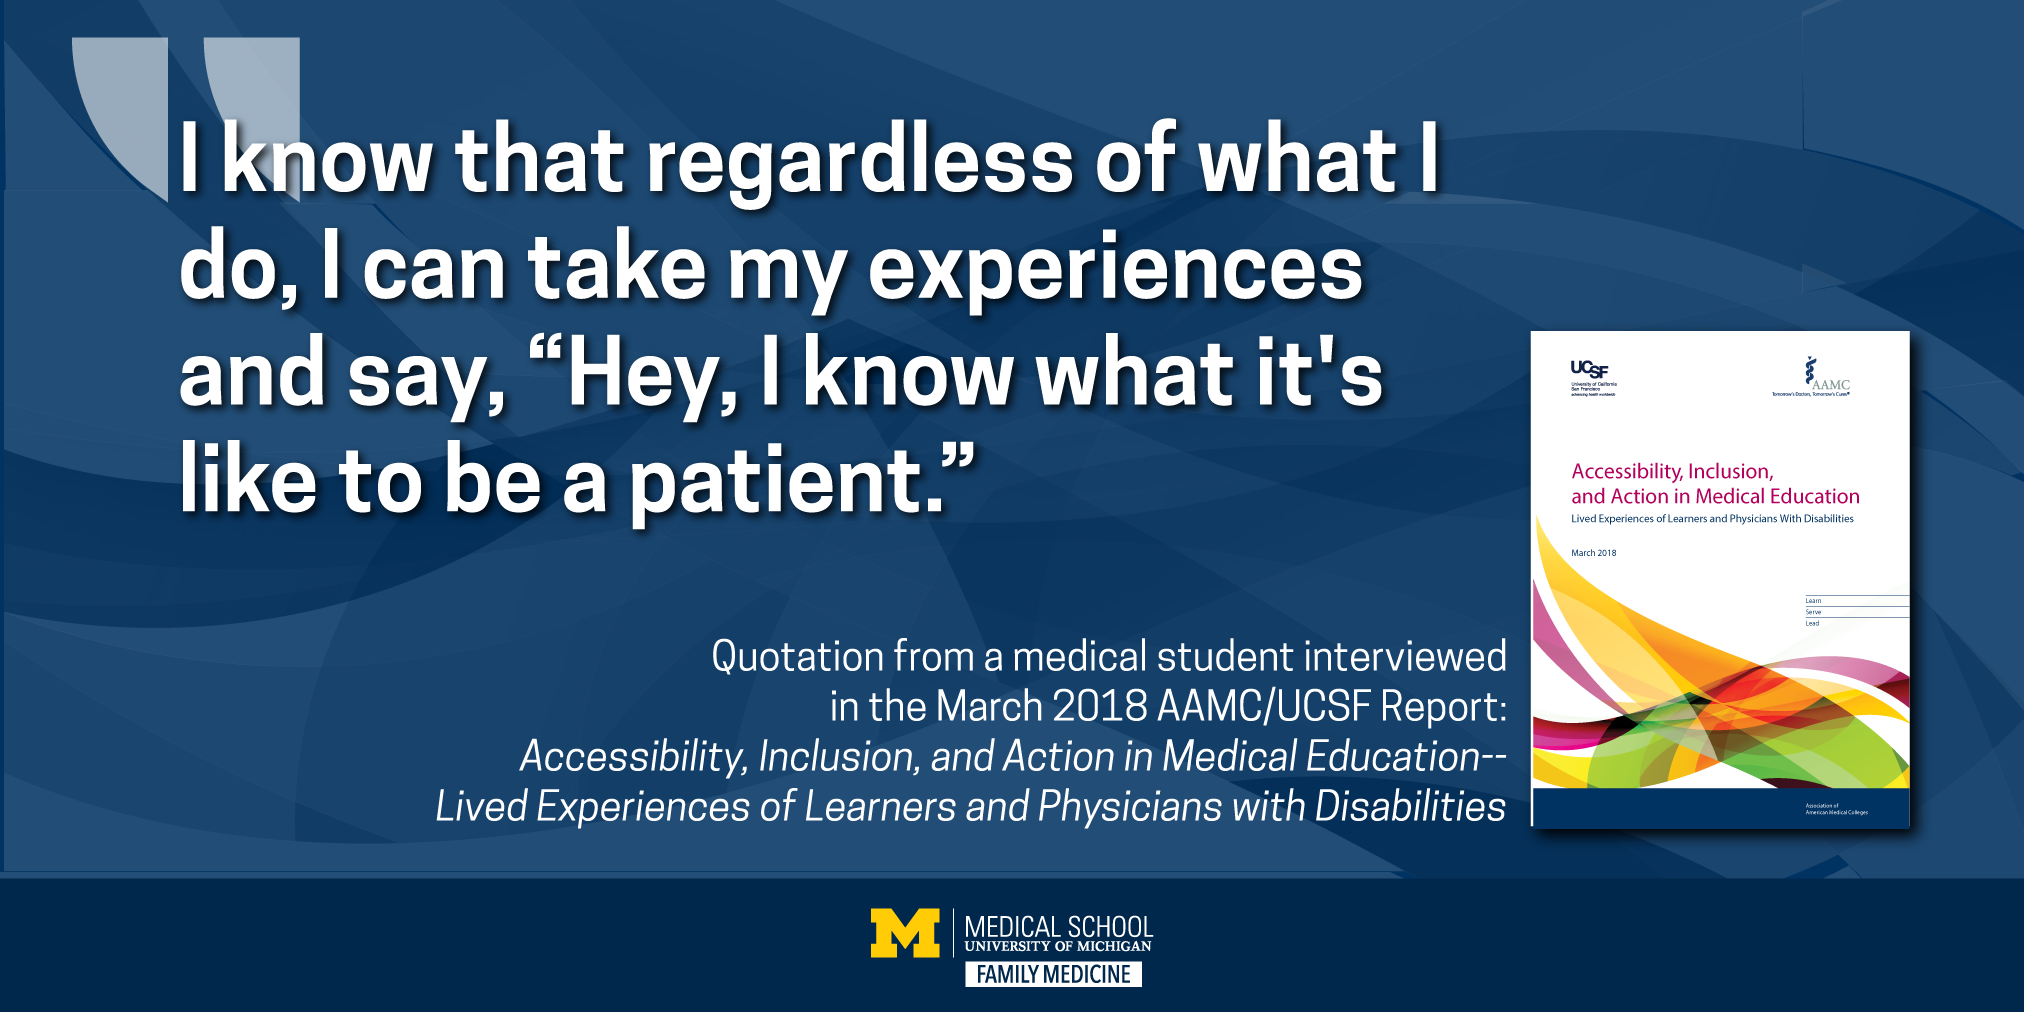 """Quote from medical student interviewed in AAMC report """"I know that regardless of what I do, I can take my experiences and say, """"Hey  I know what it's like to be a patient."""""""